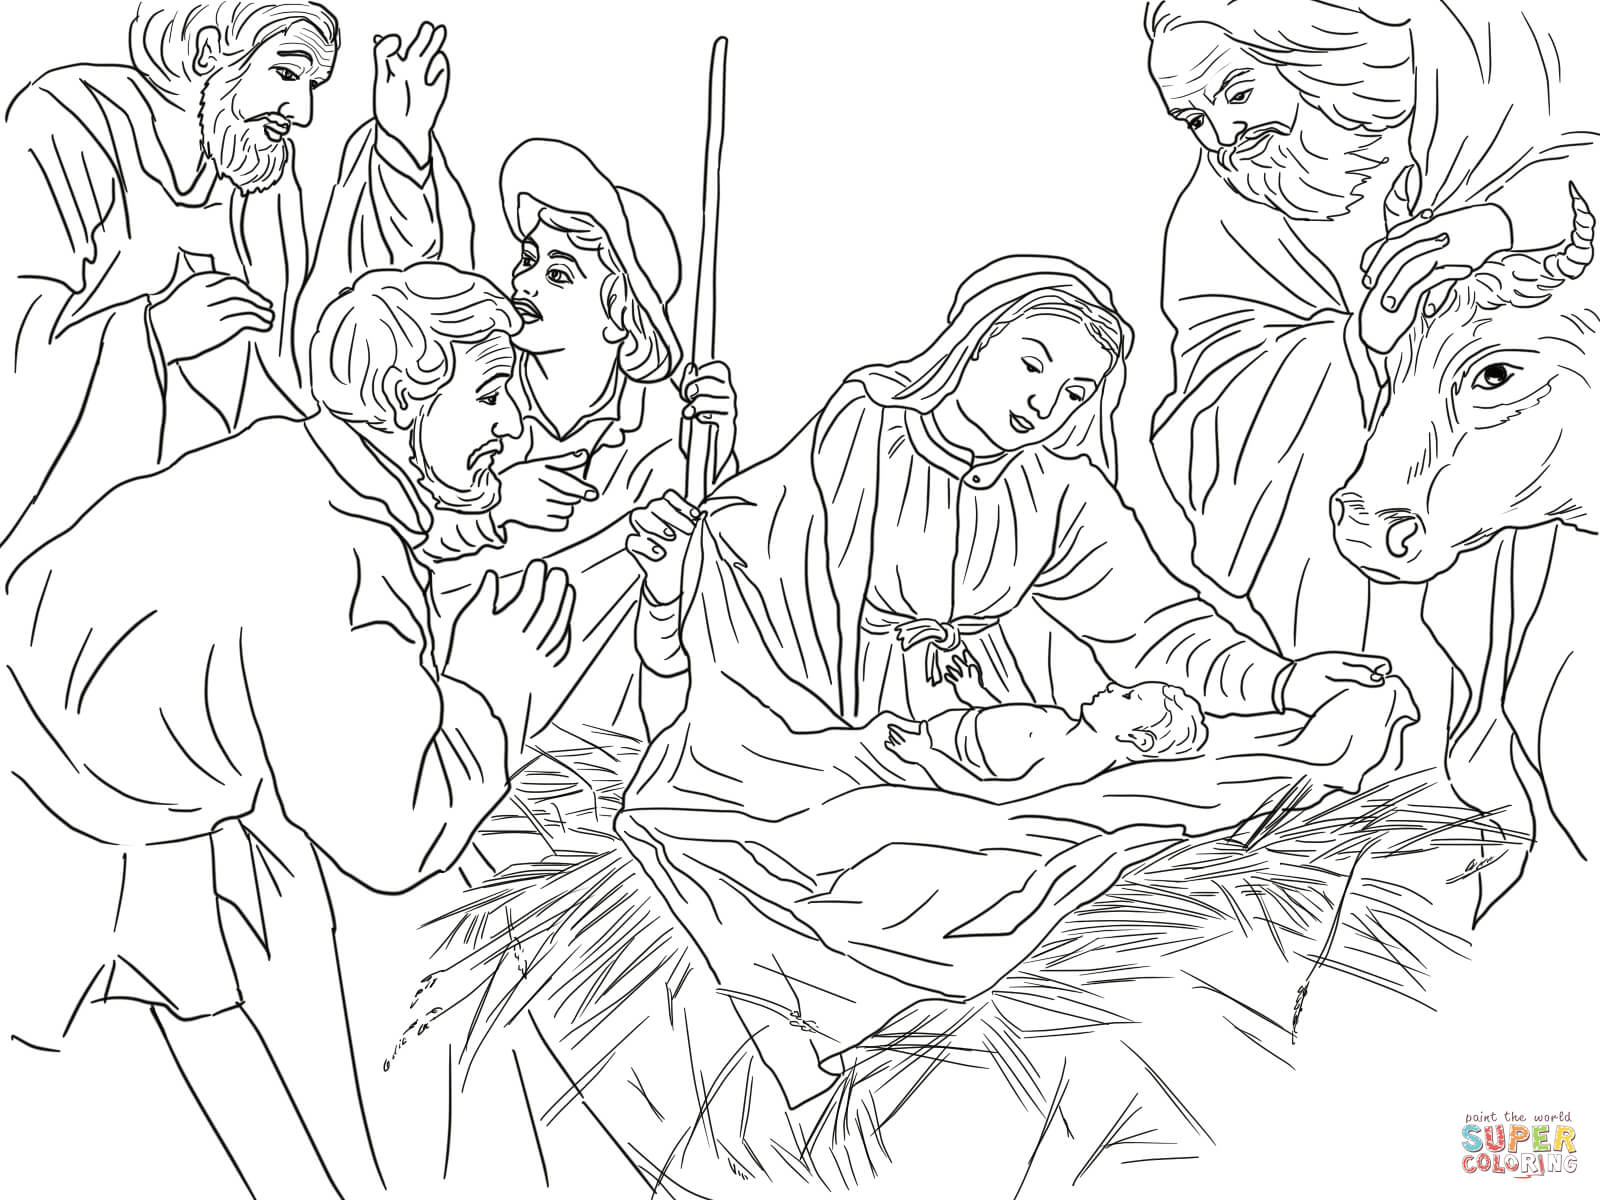 Santa And Baby Jesus Coloring Page With Shepherds Come To See Free Printable